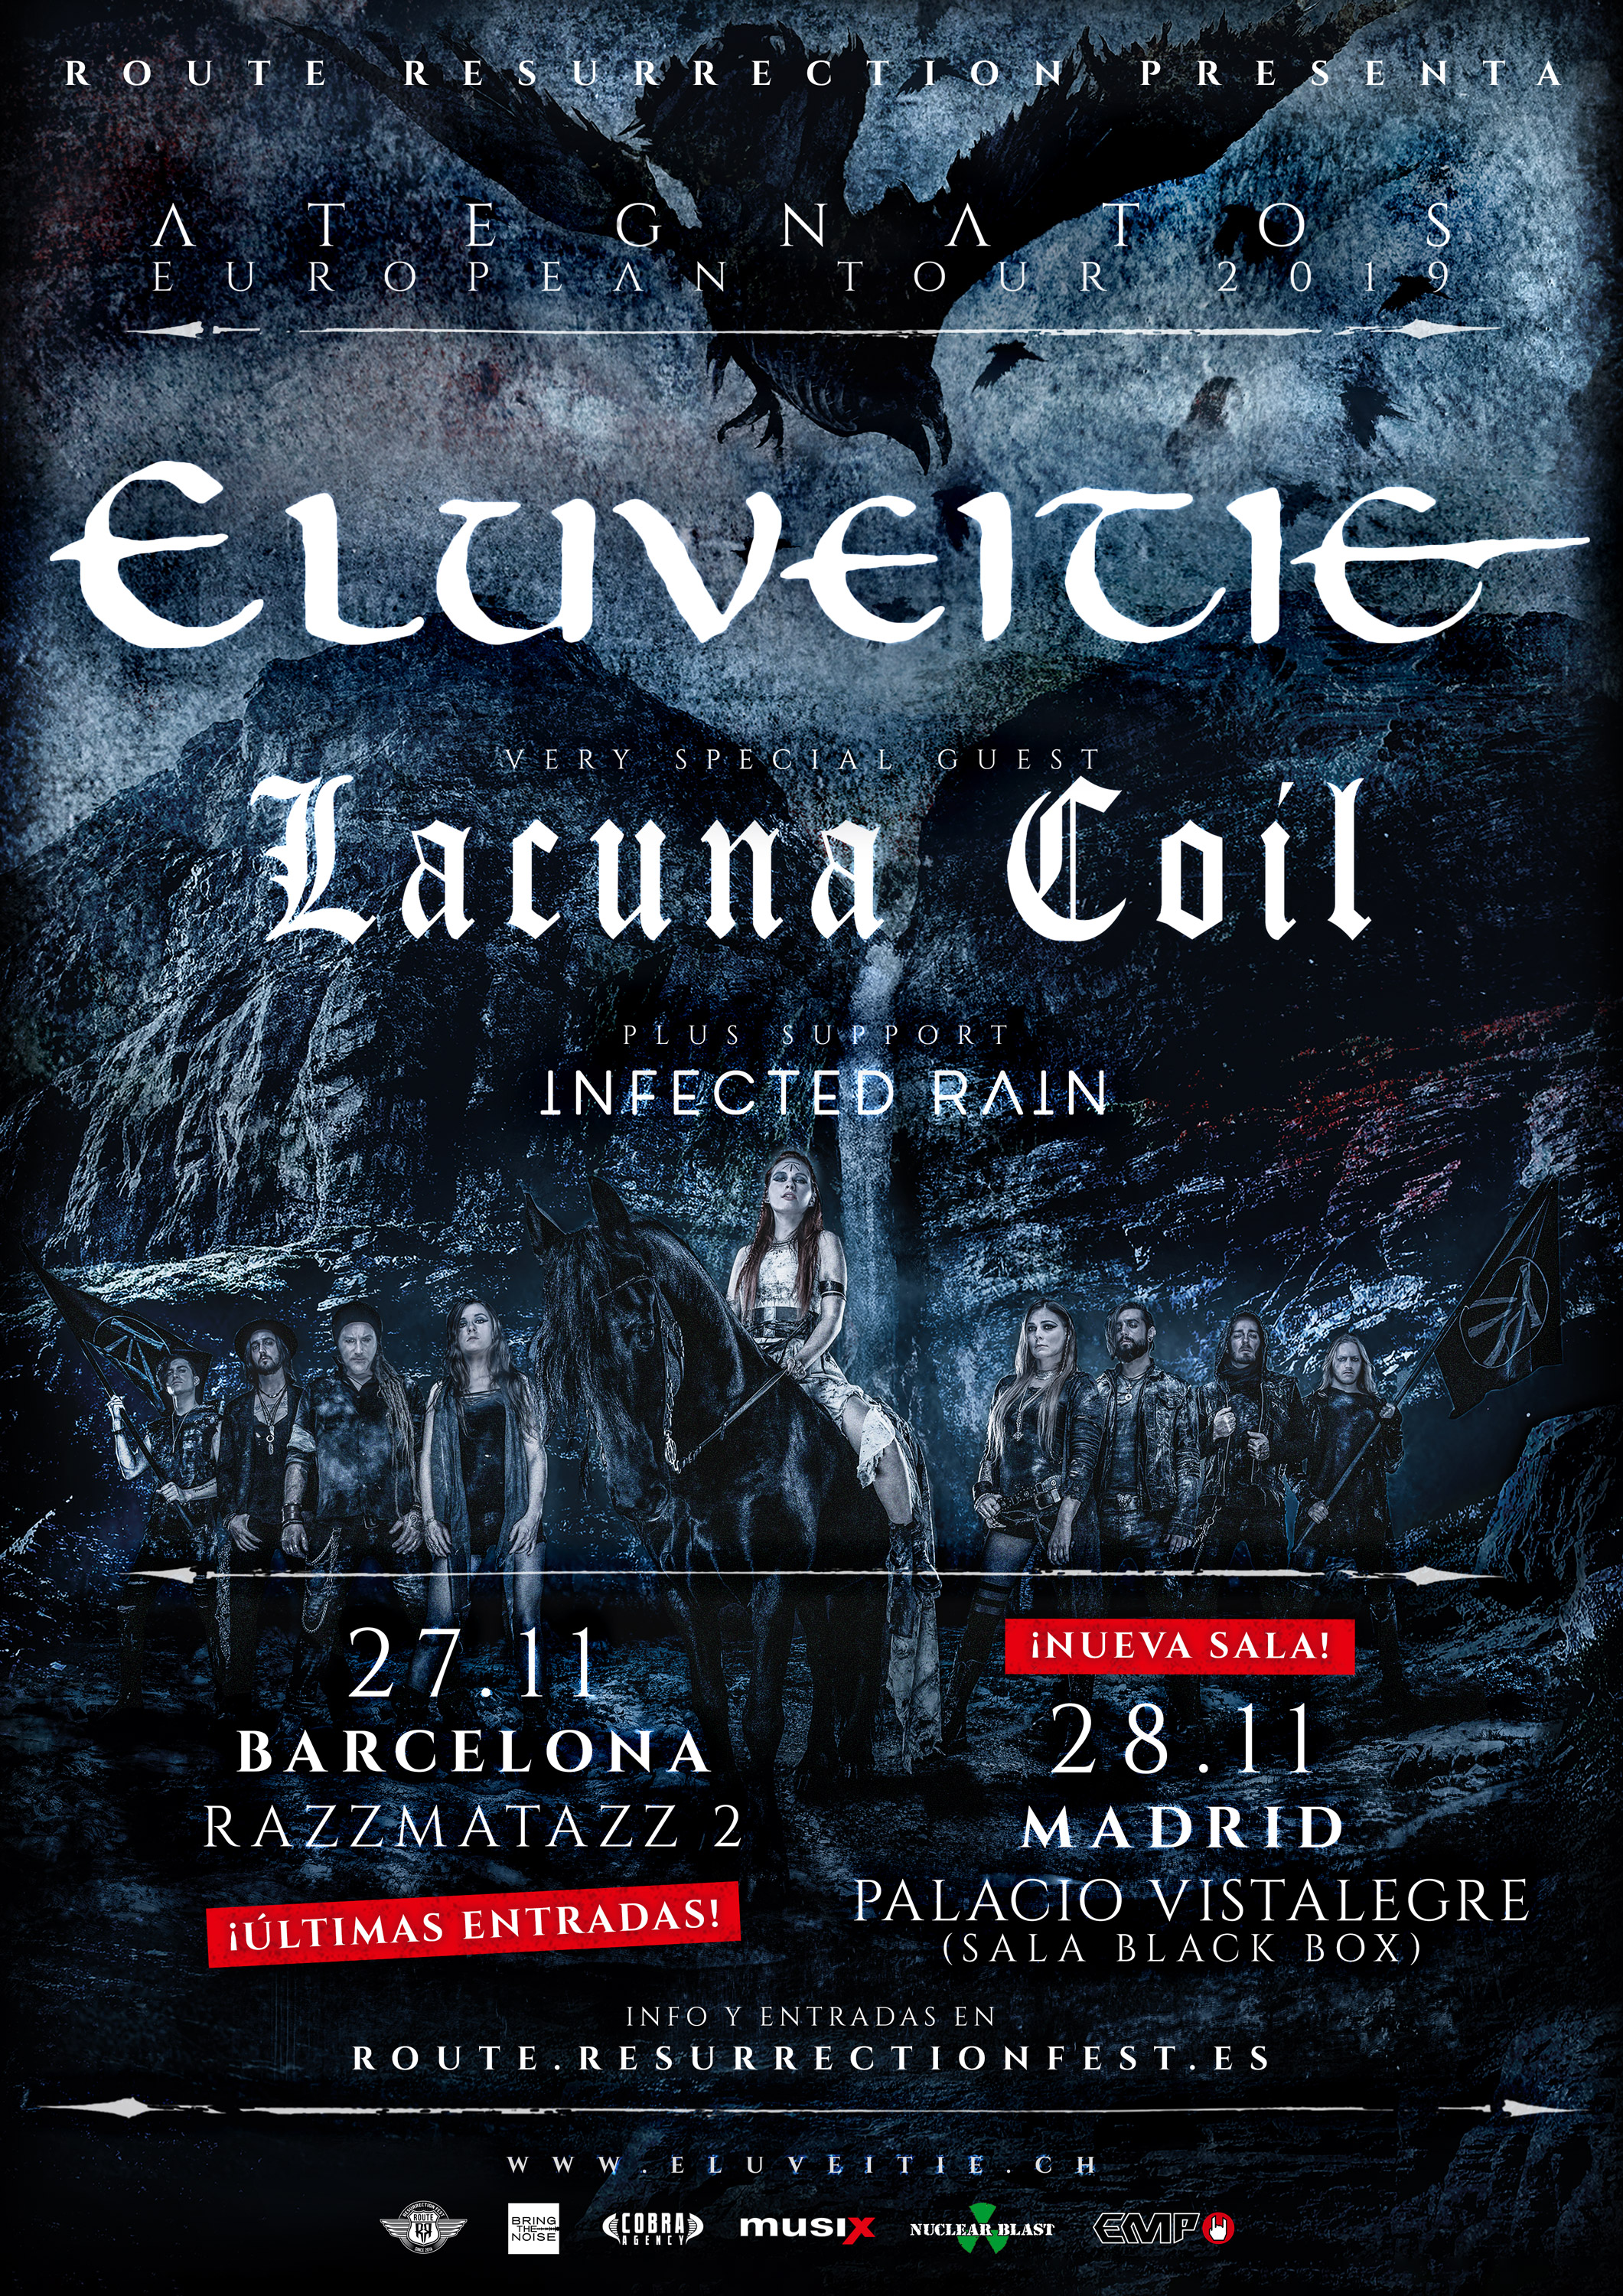 Route Resurrection 2019: Eluveitie + Lacuna Coil (Madrid)